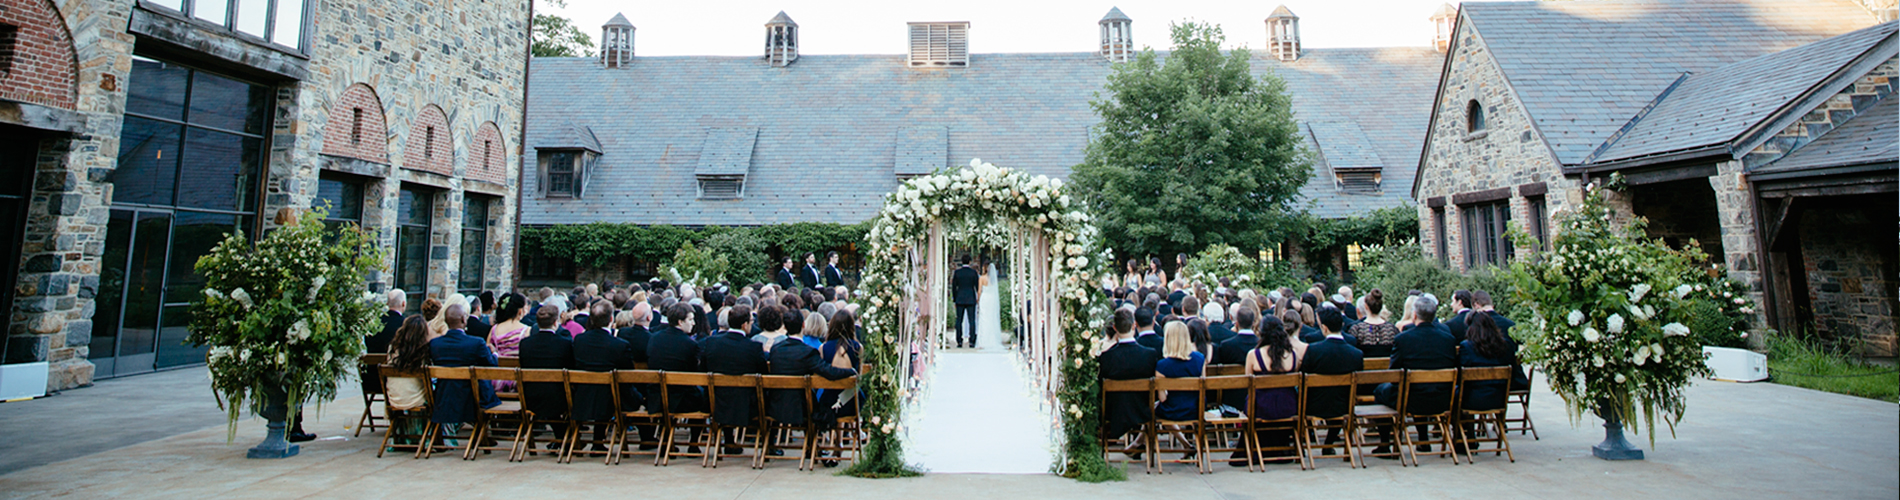 Wedding Courtyard